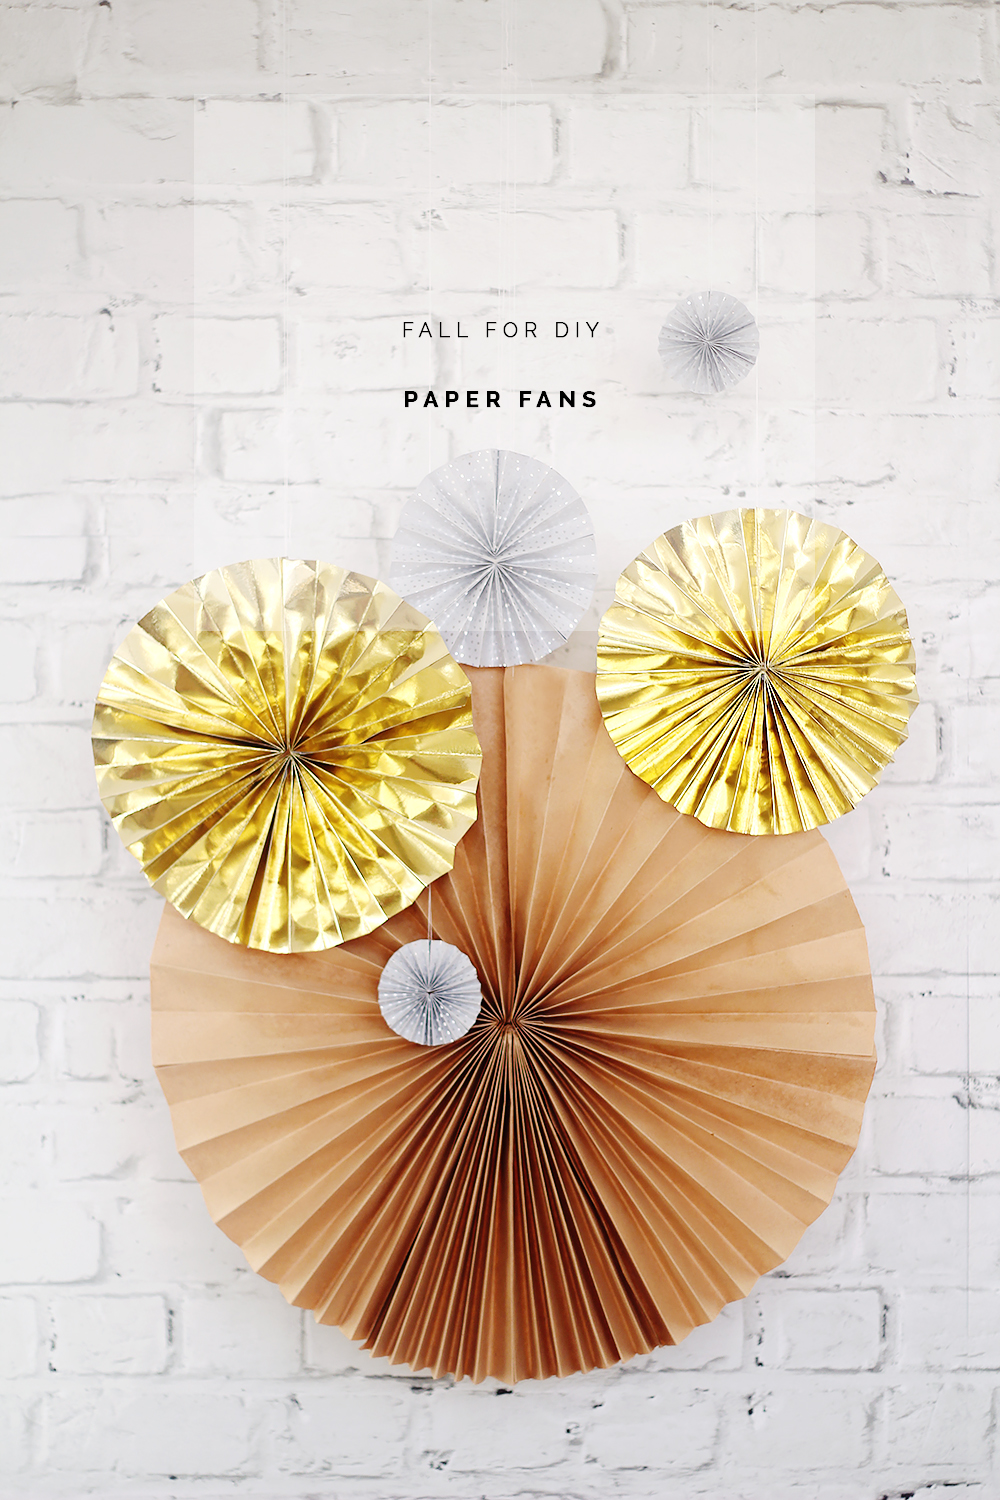 DIY New Years Eve Paper Fans | Fall For DIY